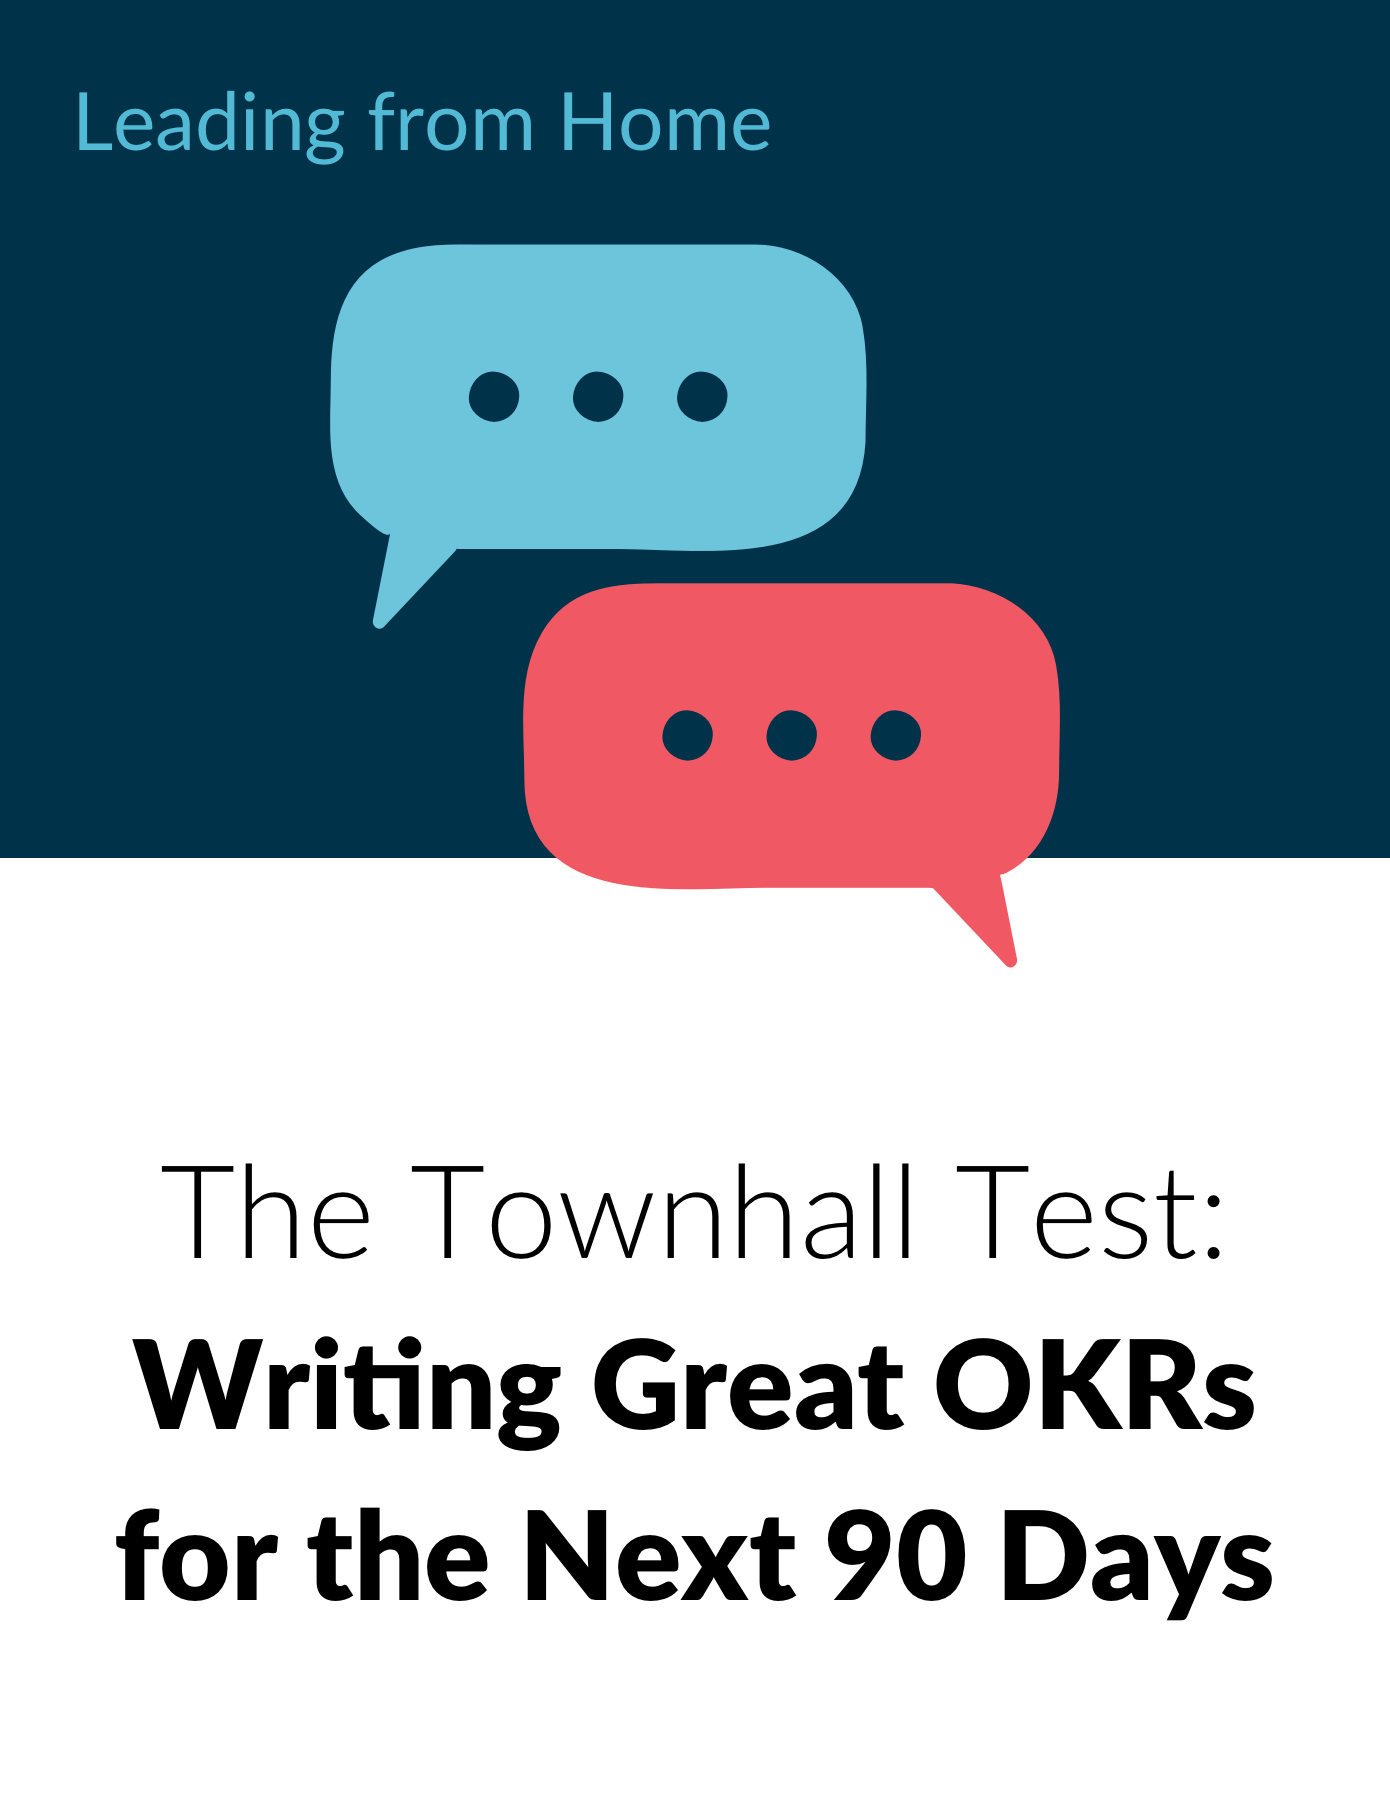 Writing Great OKRs for the Next 90 Days